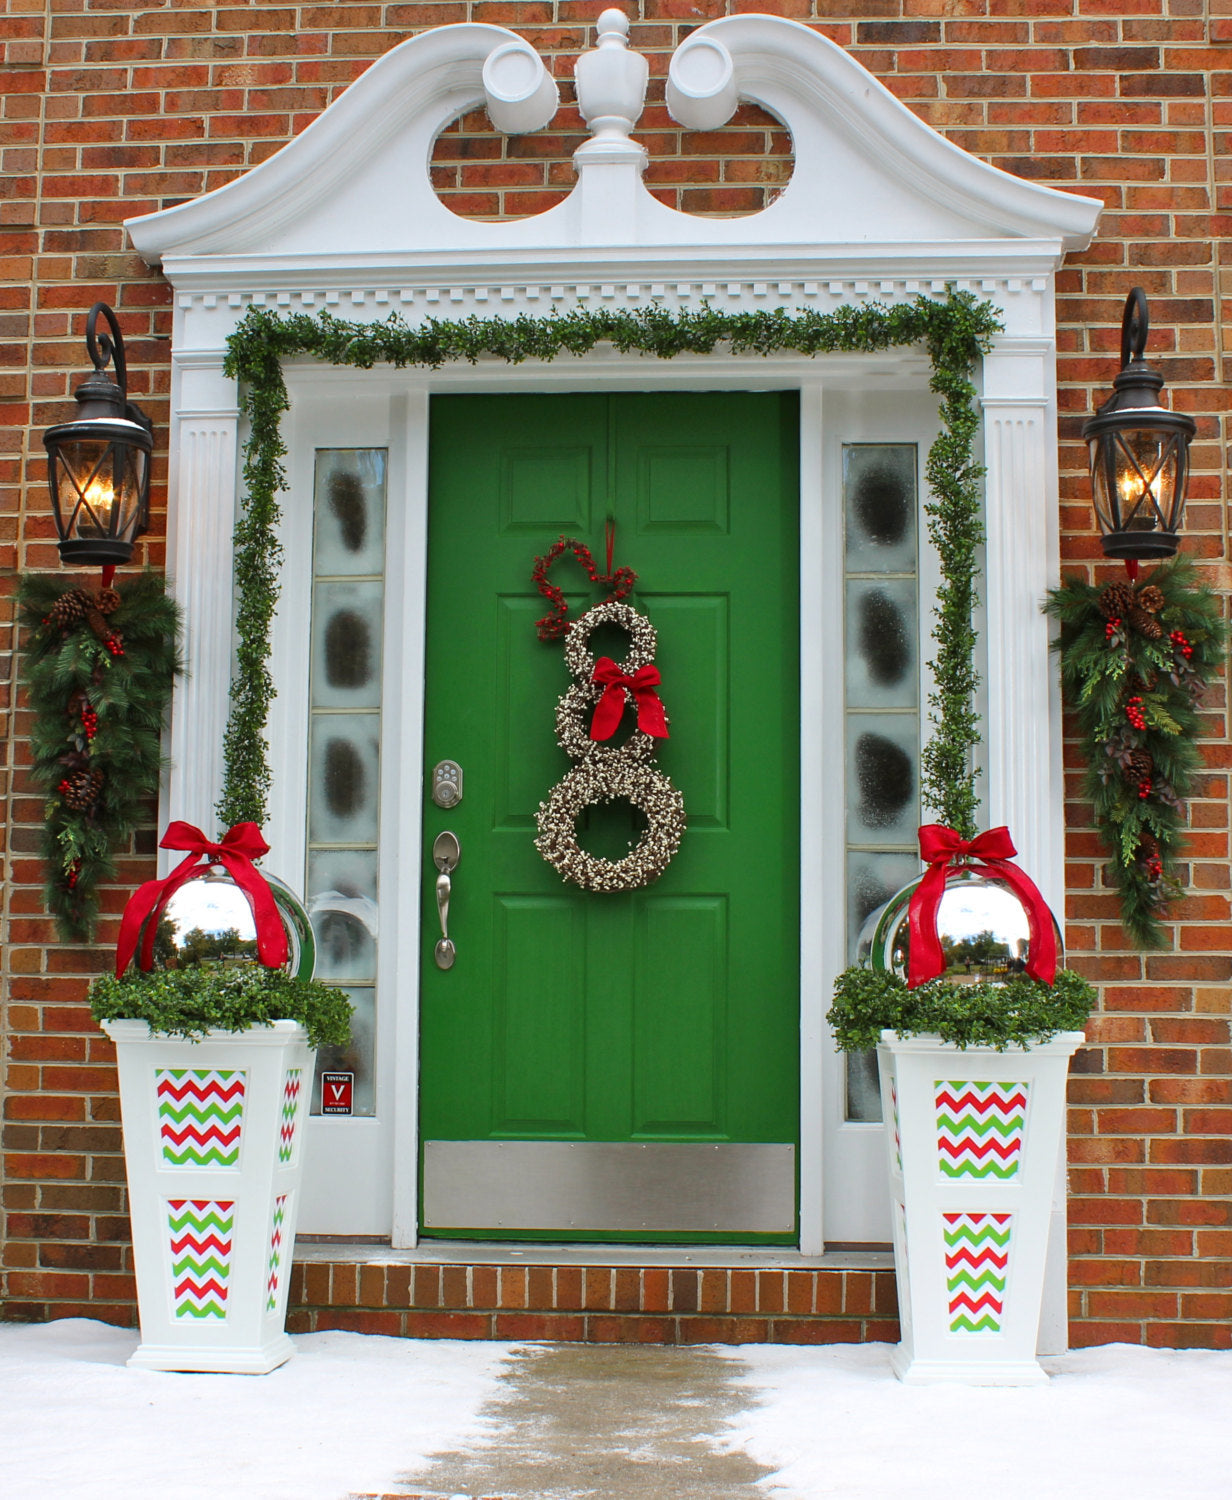 Christmas Wreath - Snowman Wreath - Build Your Own Snowman Wreath - Choose Size/Hat/Bow